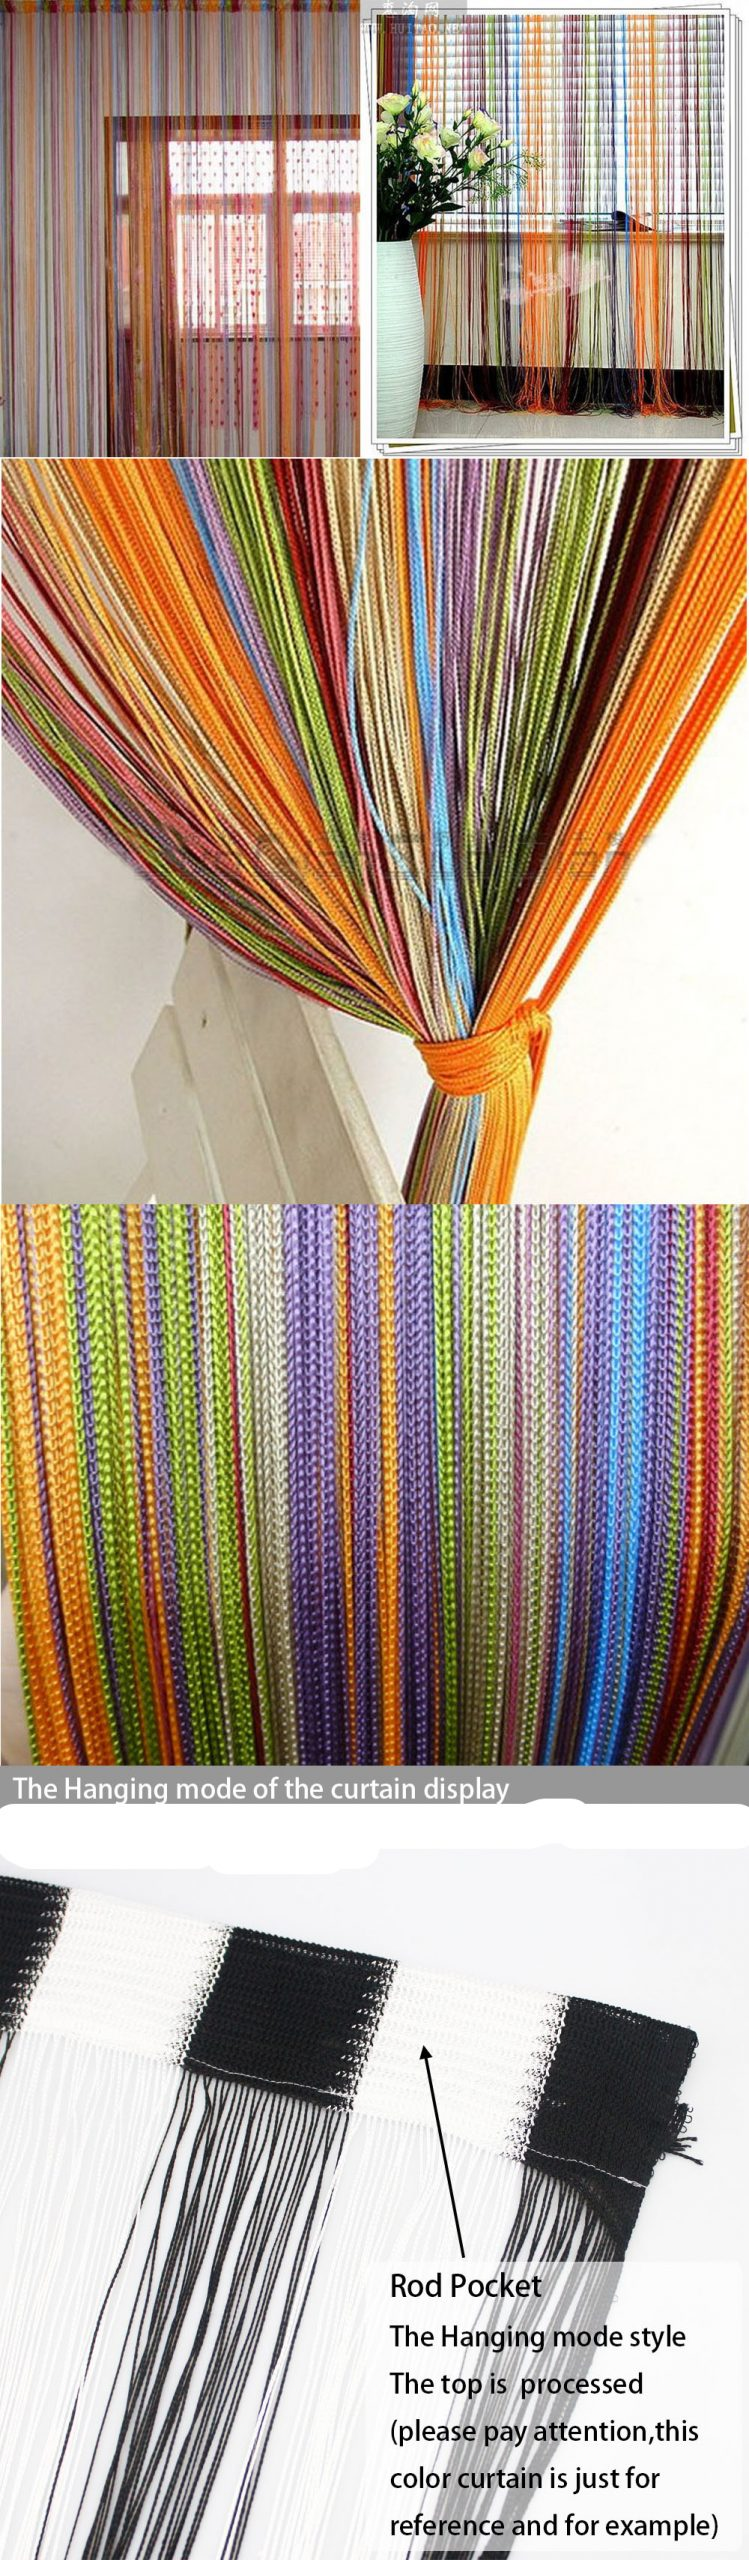 150*300CM colorful string curtain shower curtain  fringe panel room divider  home decoration  window vanlance   free shipping Best Children's Lighting & Home Decor Online Store